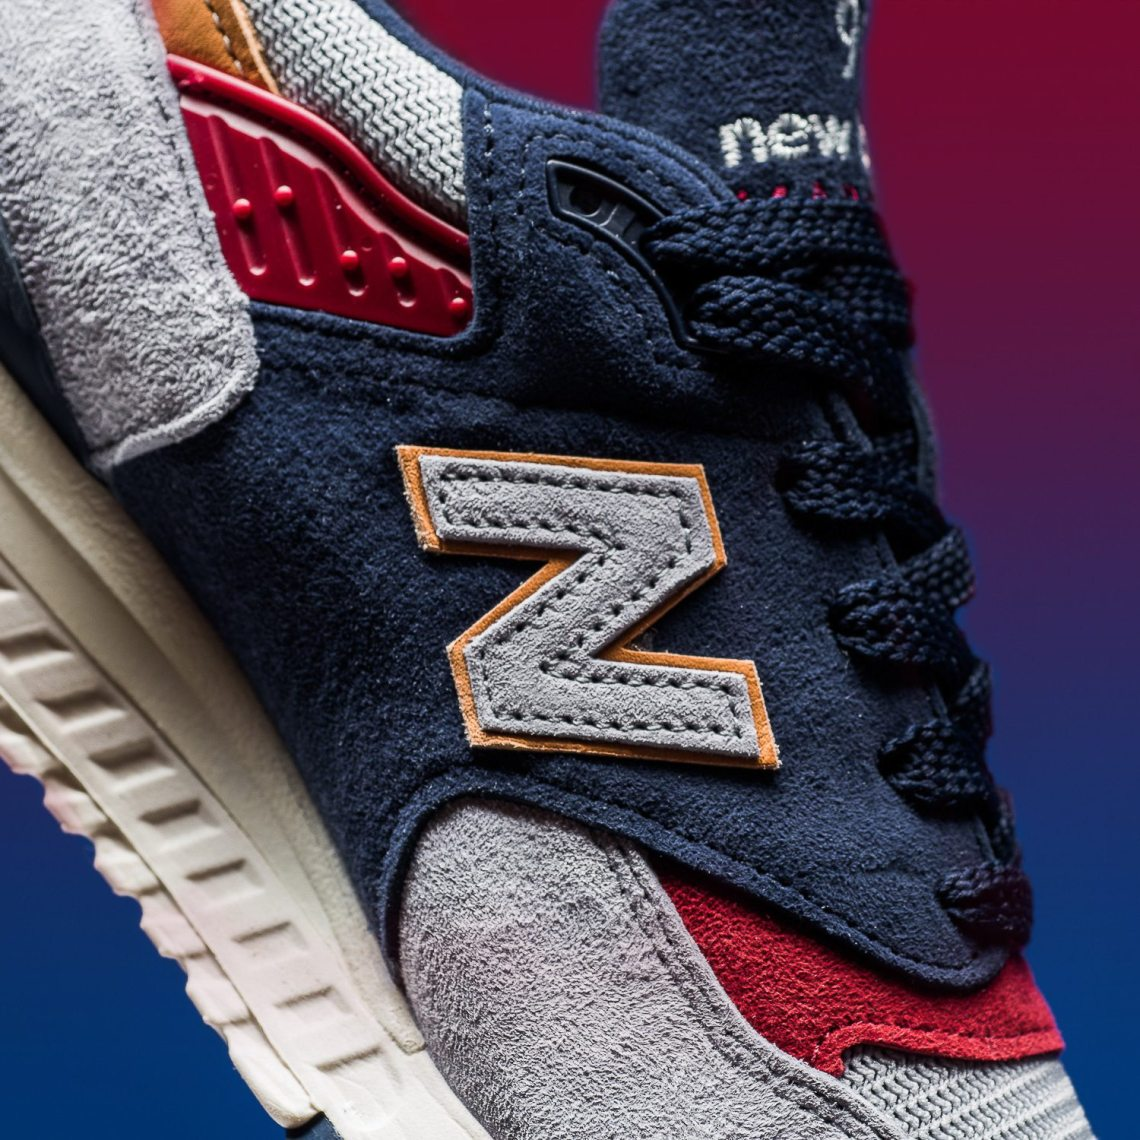 b396592aa6532 This New Balance 998 Lives up to its Name